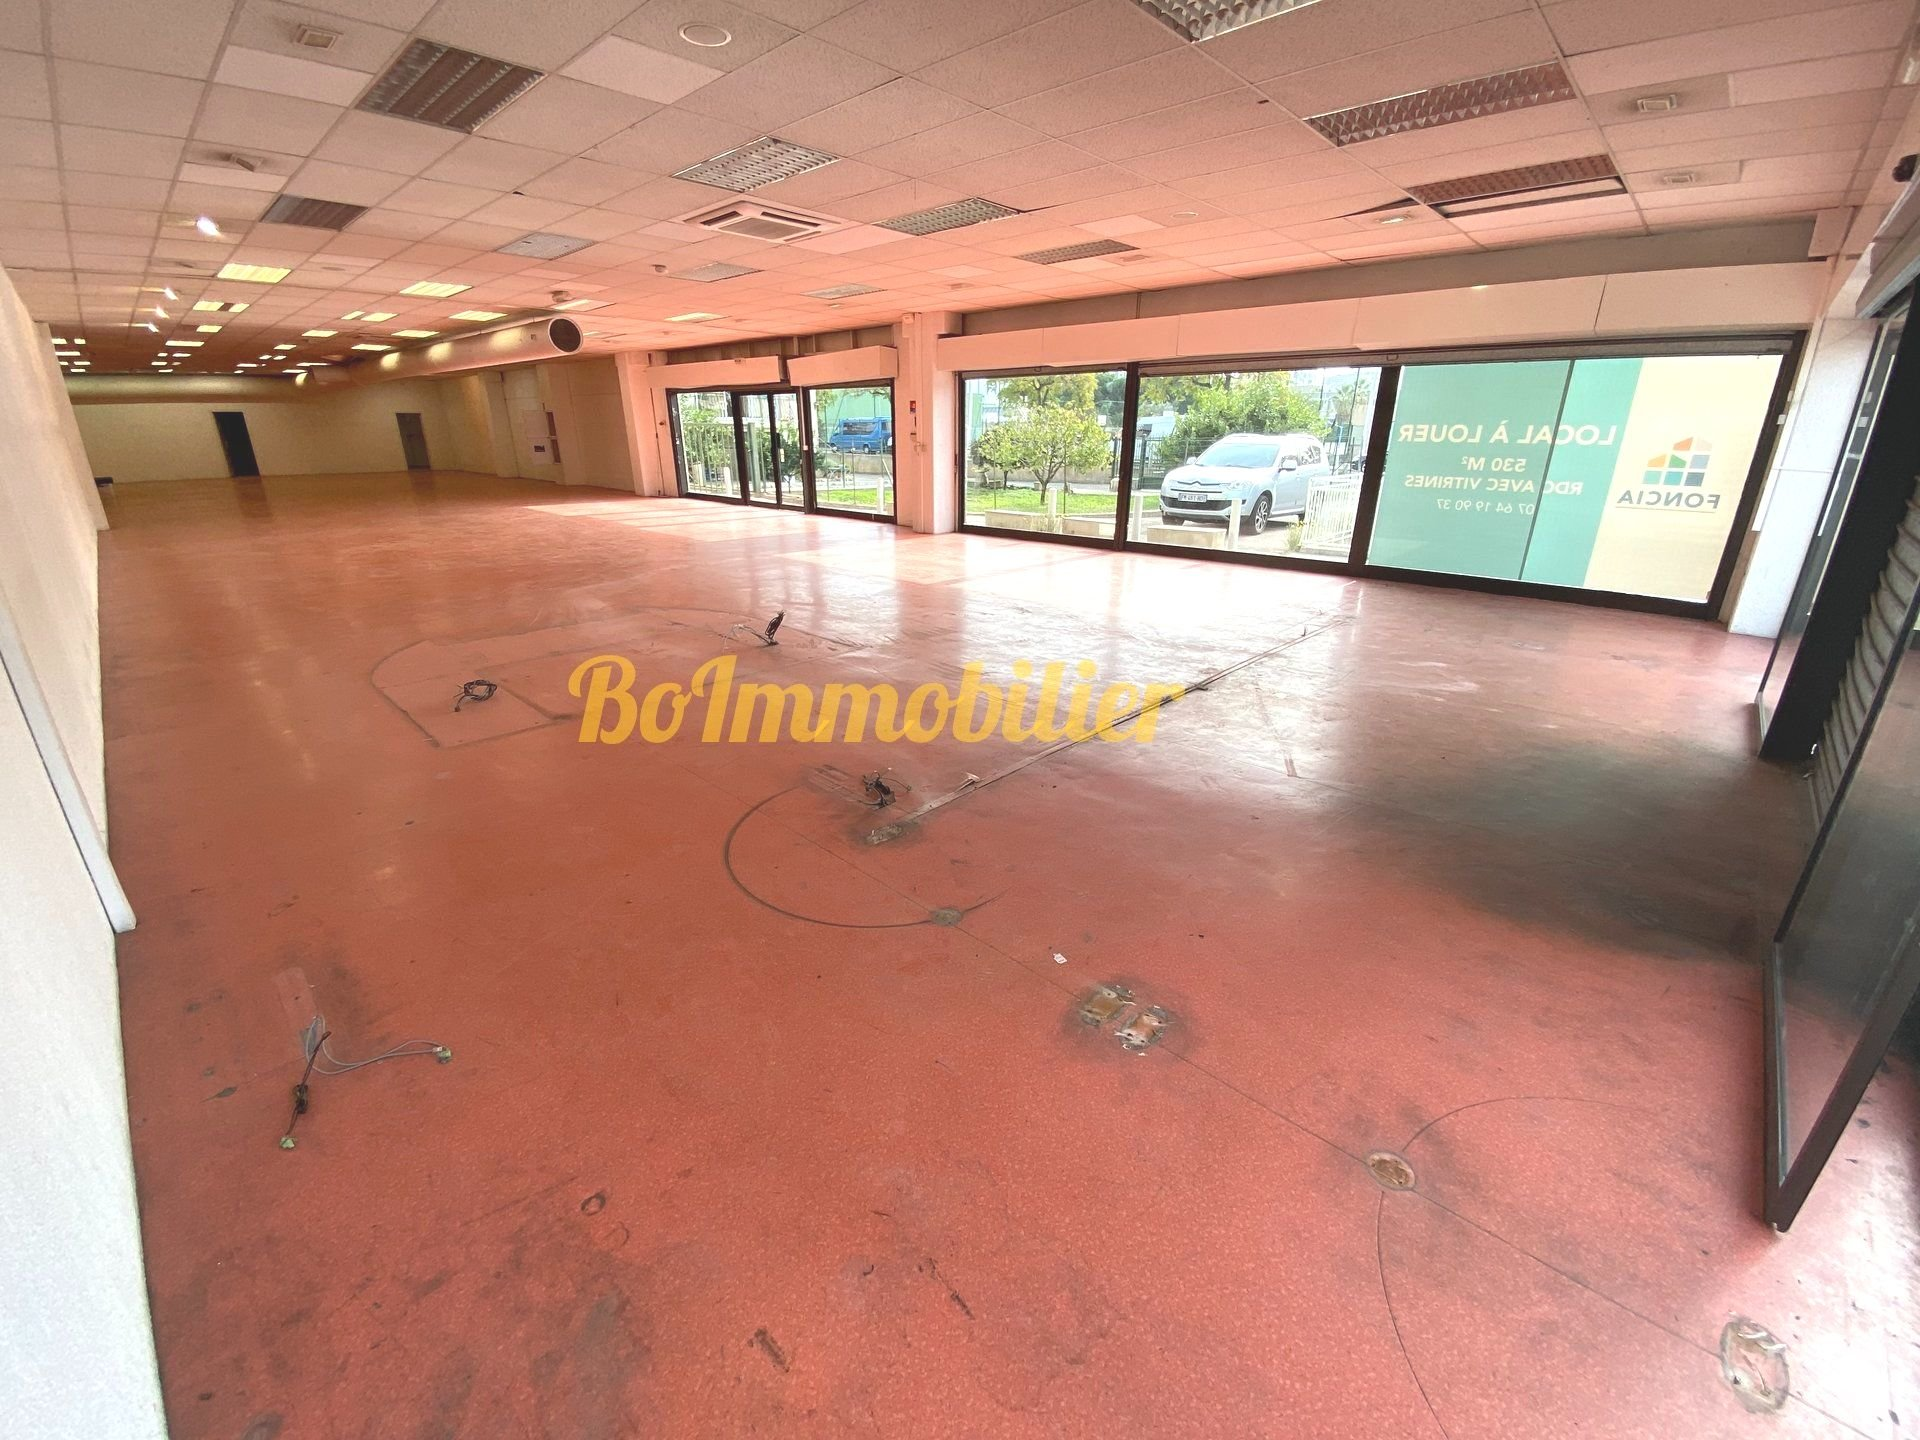 Route du Mercantour / Location Pure / Local commercial de 530m²